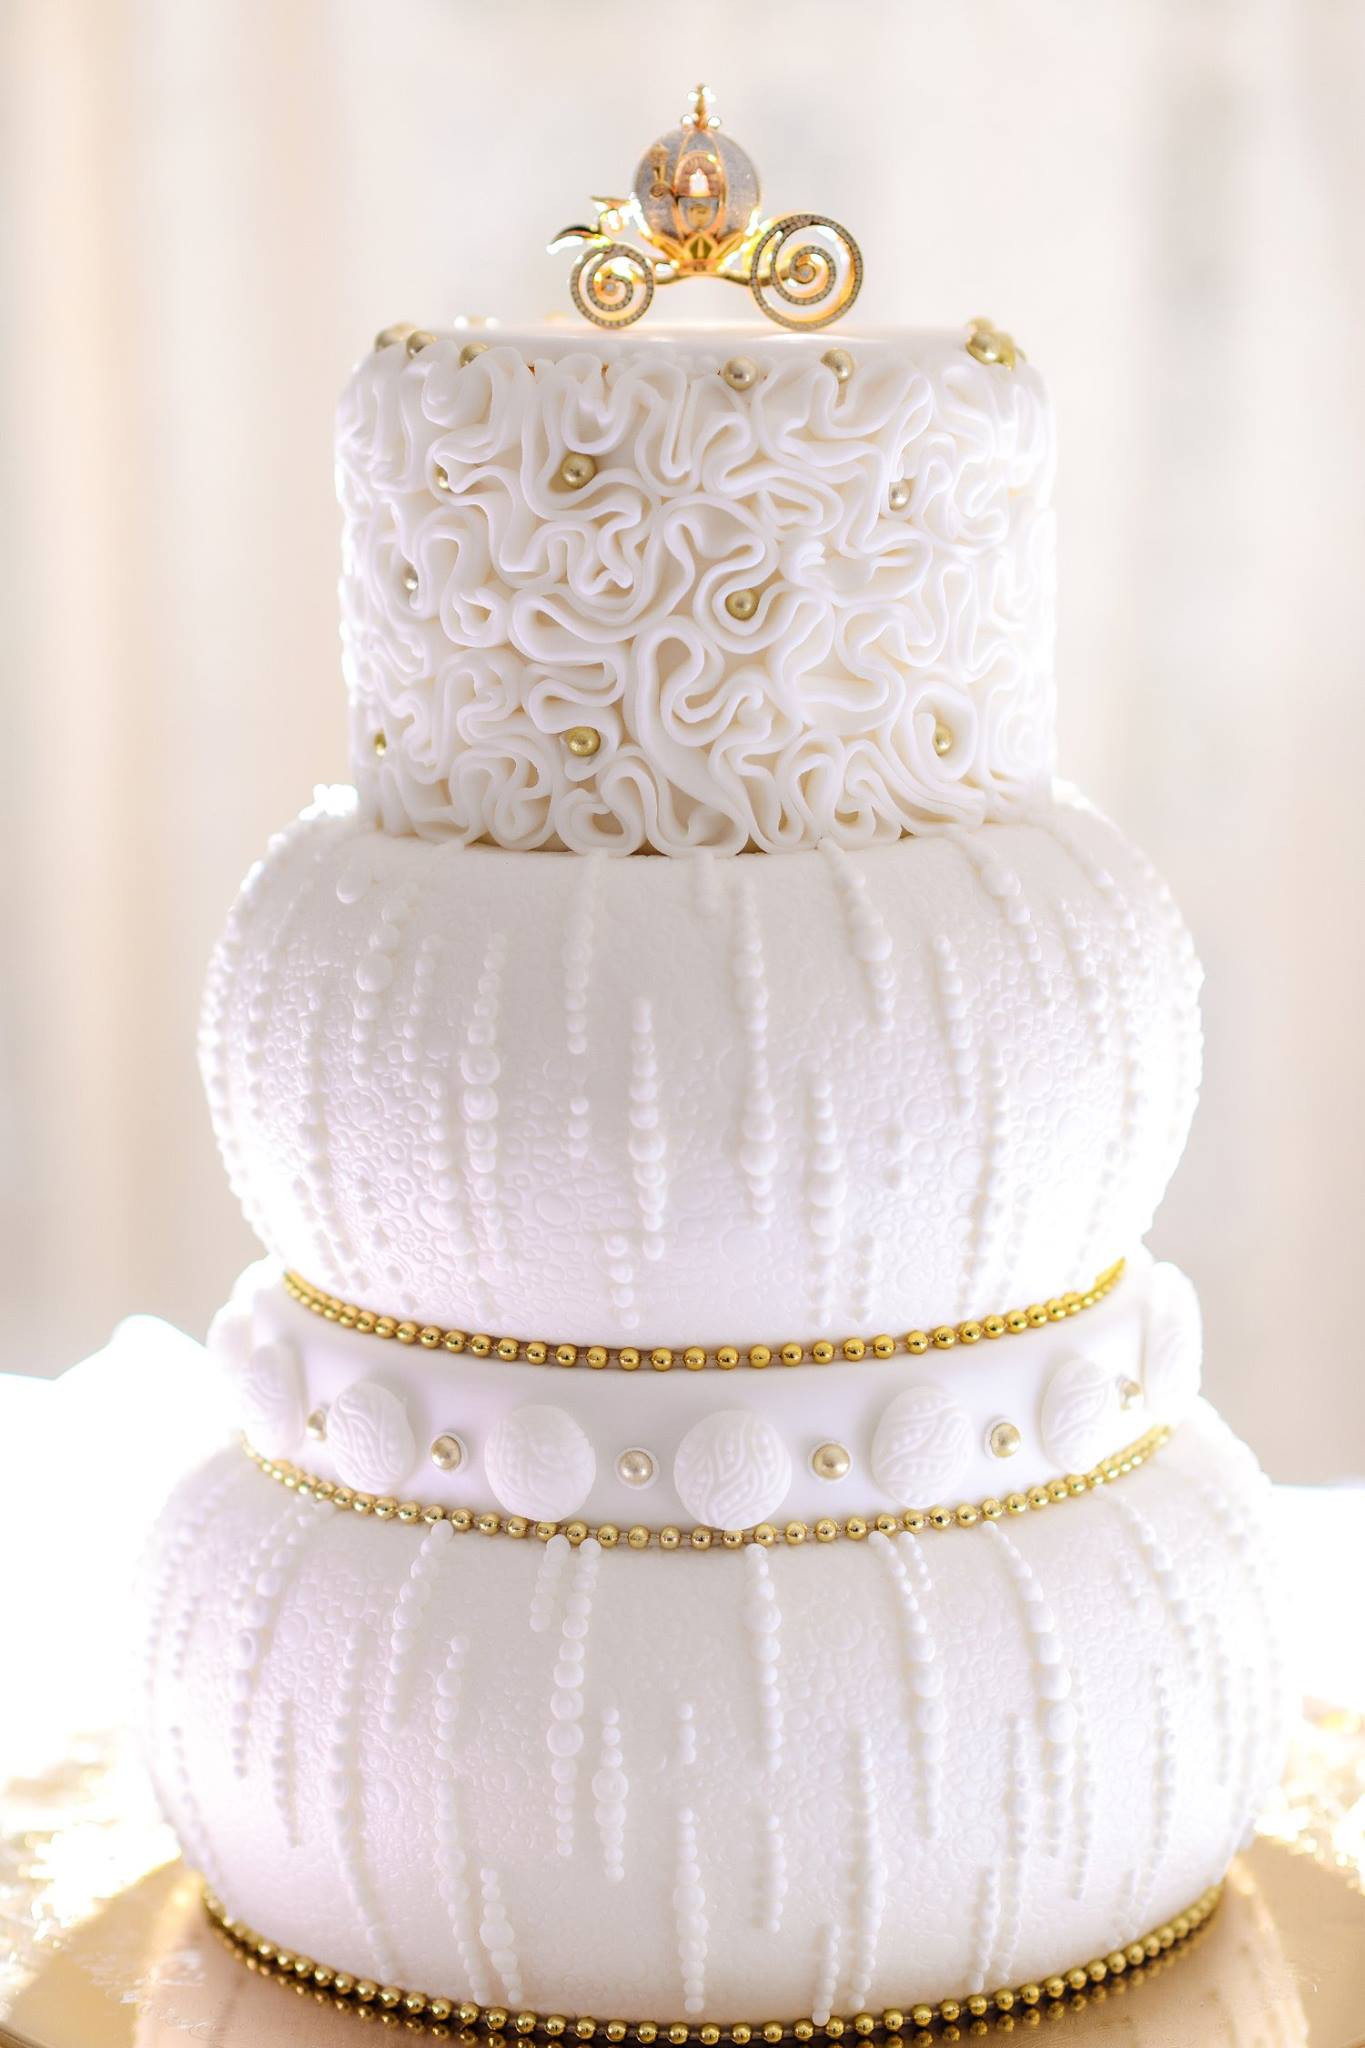 wedding cake designs 2018 9 beautiful wedding cake ideas in 2018 weddingplanner co uk 22468